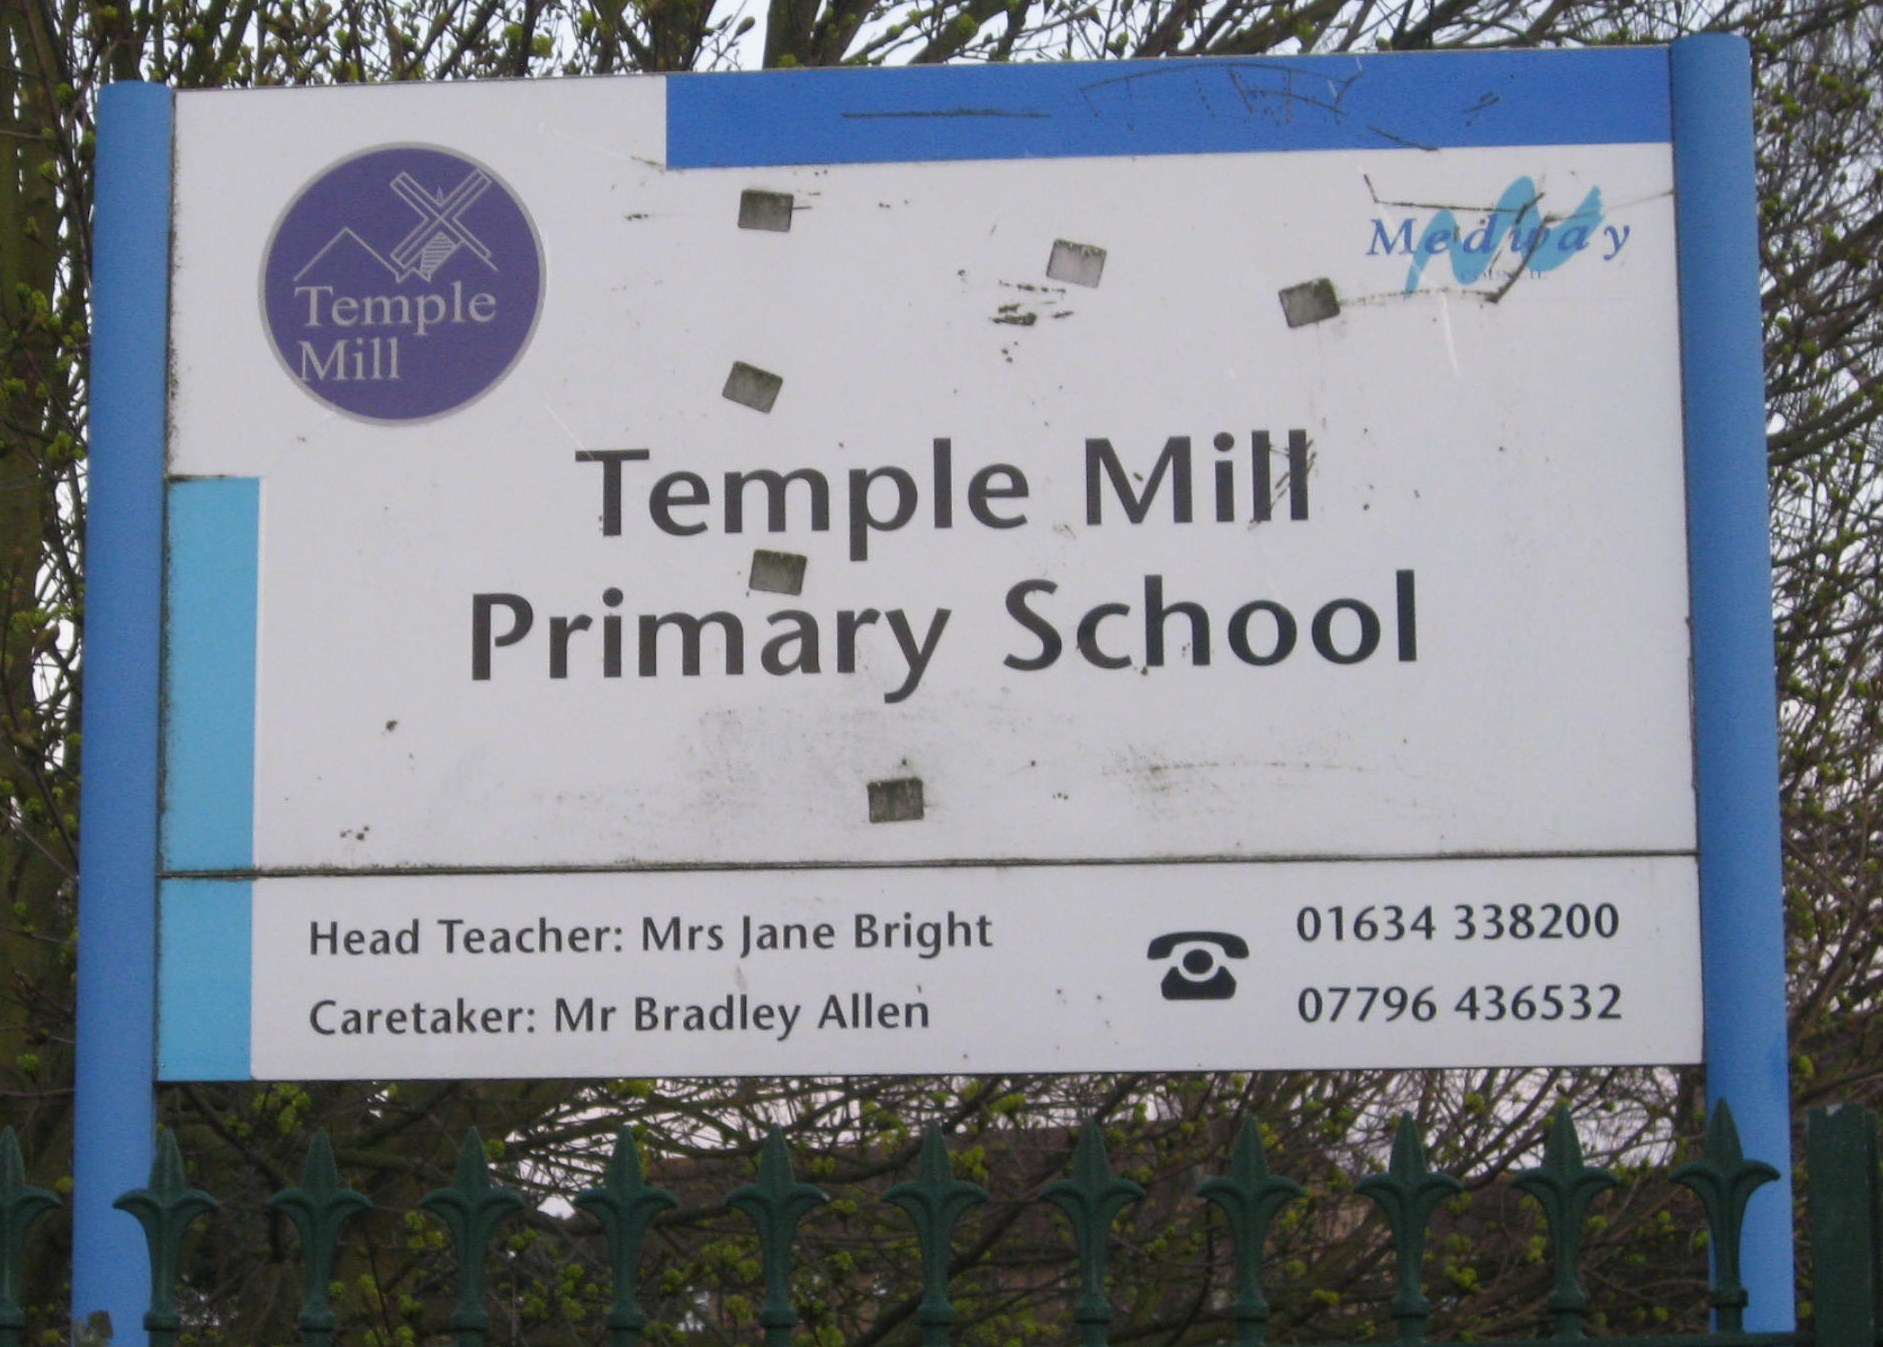 Temple Mill Primary